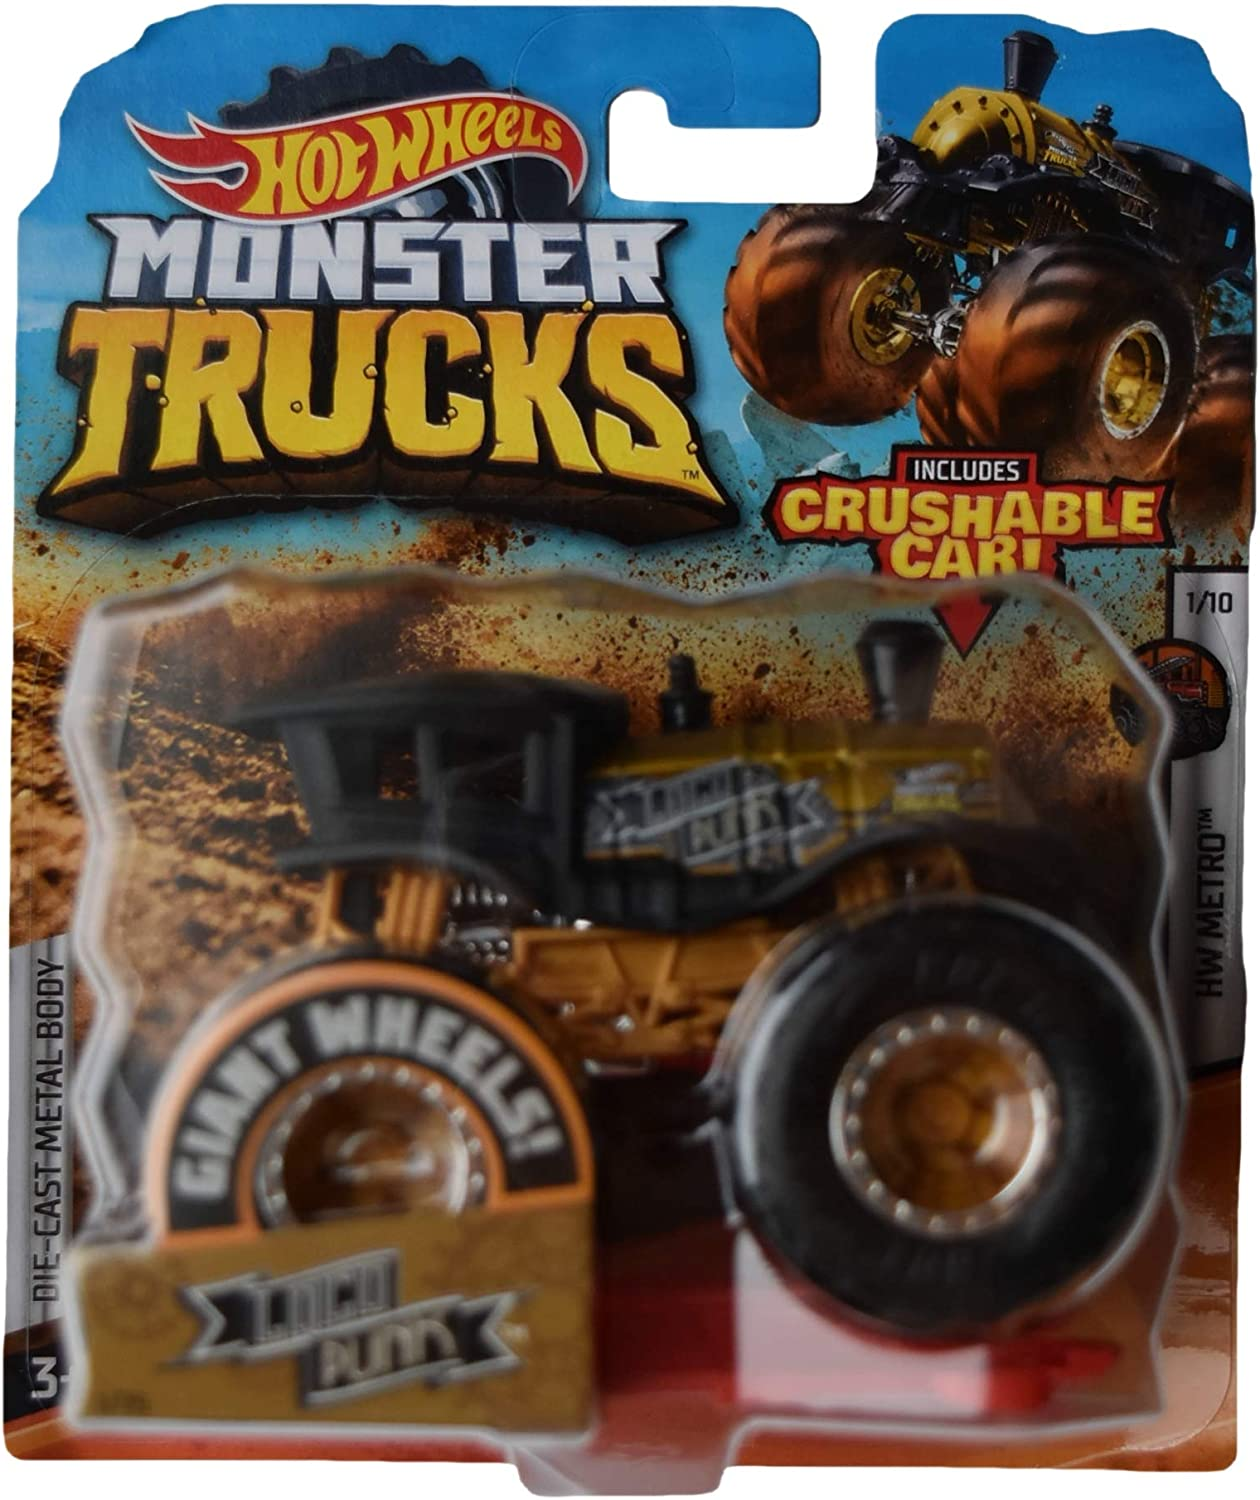 Hot Wheels Monster Trucks 1:64 Scale 1 Punk 75 Loco National uniform free shipping Ca Crushable Spasm price